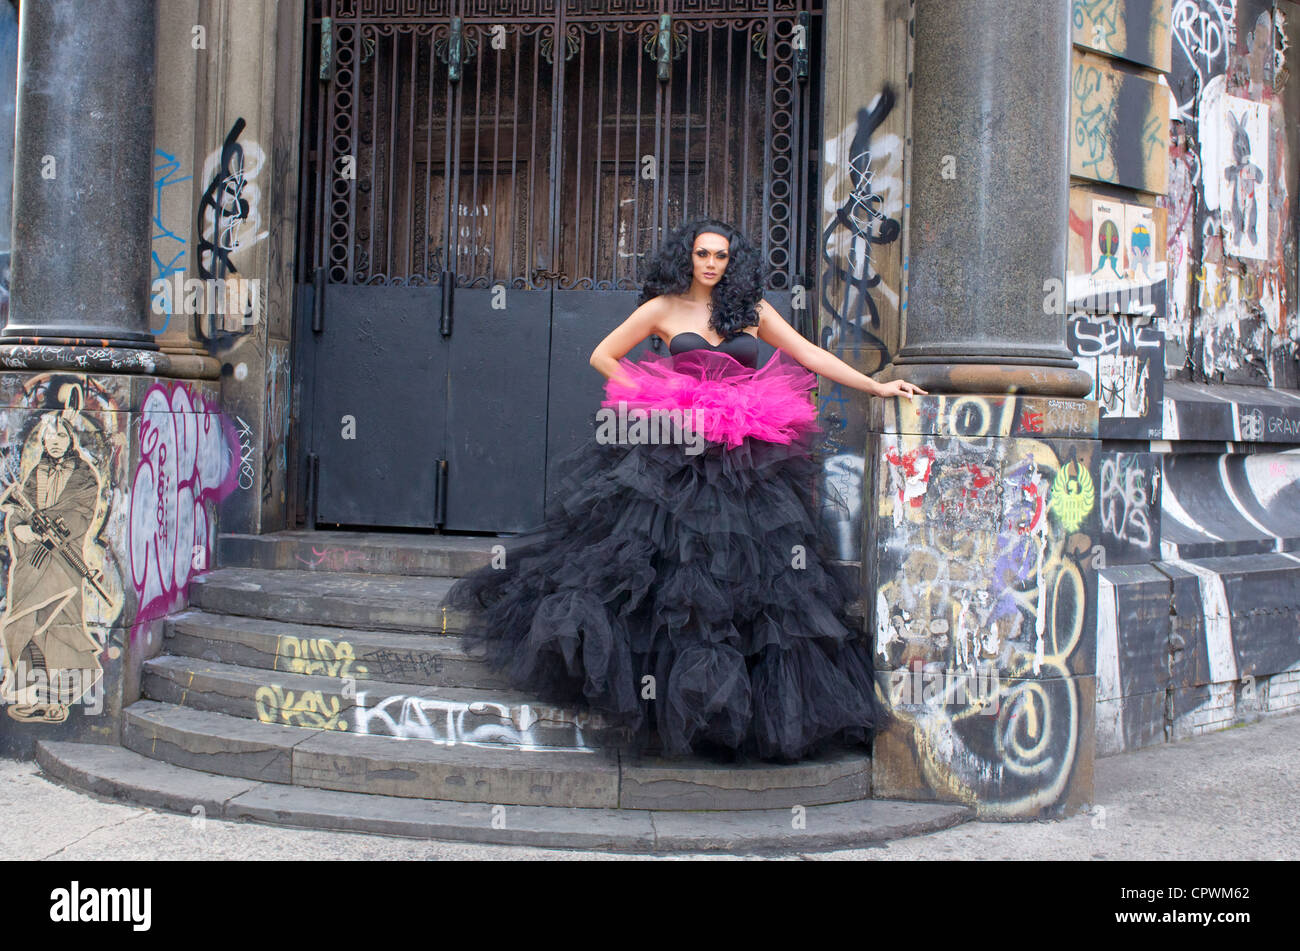 model-in-evening-dress-poses-in-front-of